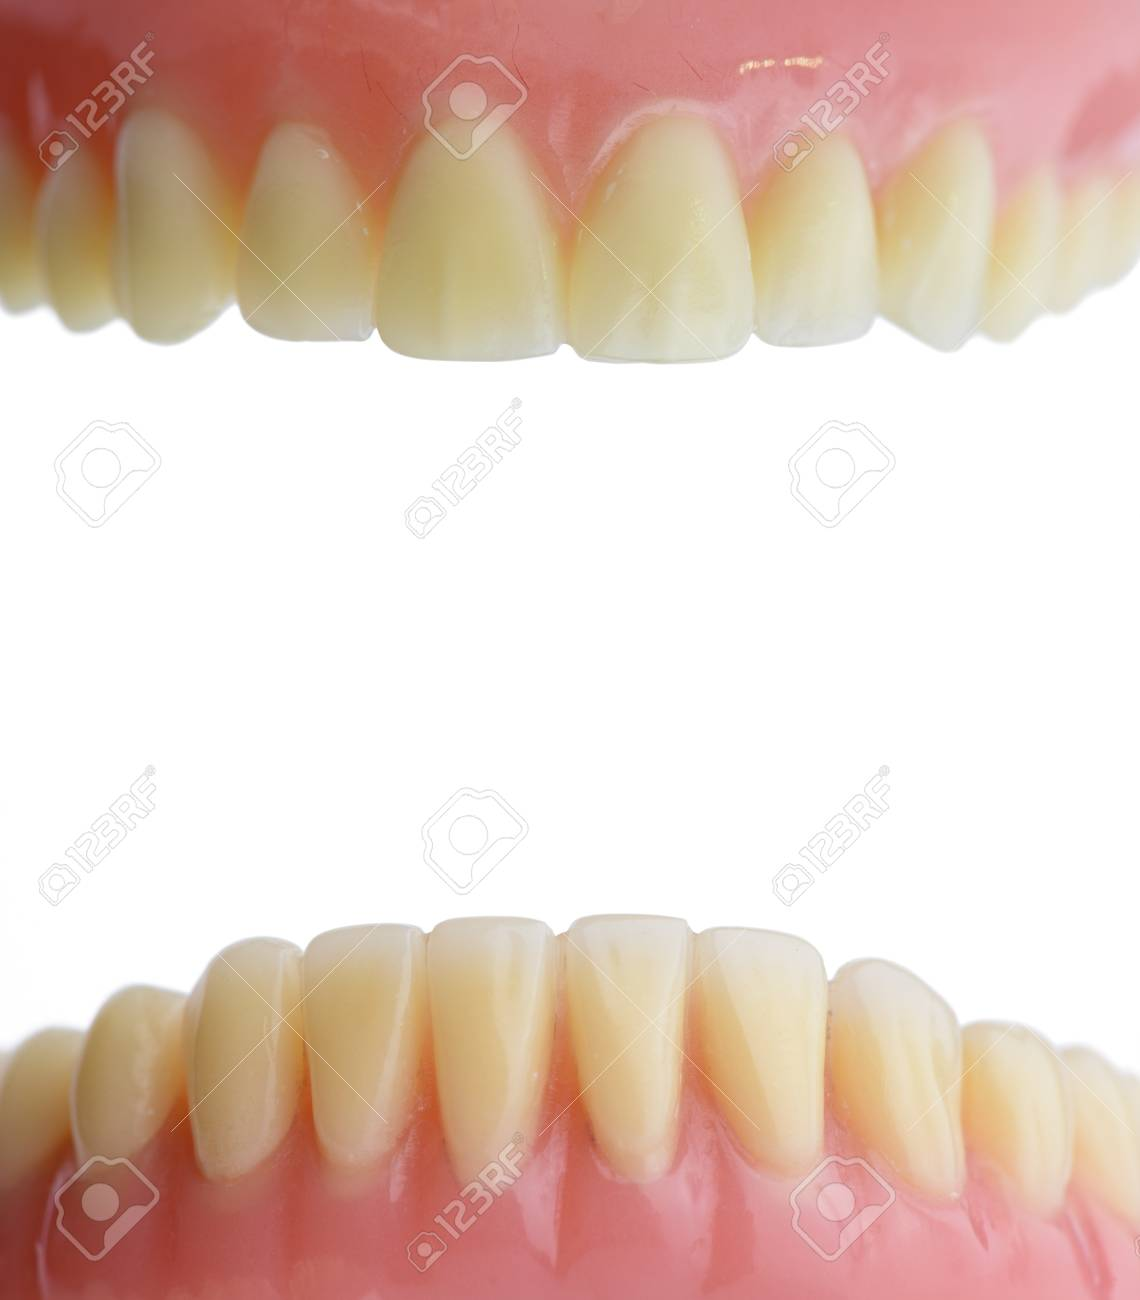 Teeth Gum Human Mouth Anatomy. Isolated On White Background. Stock ...